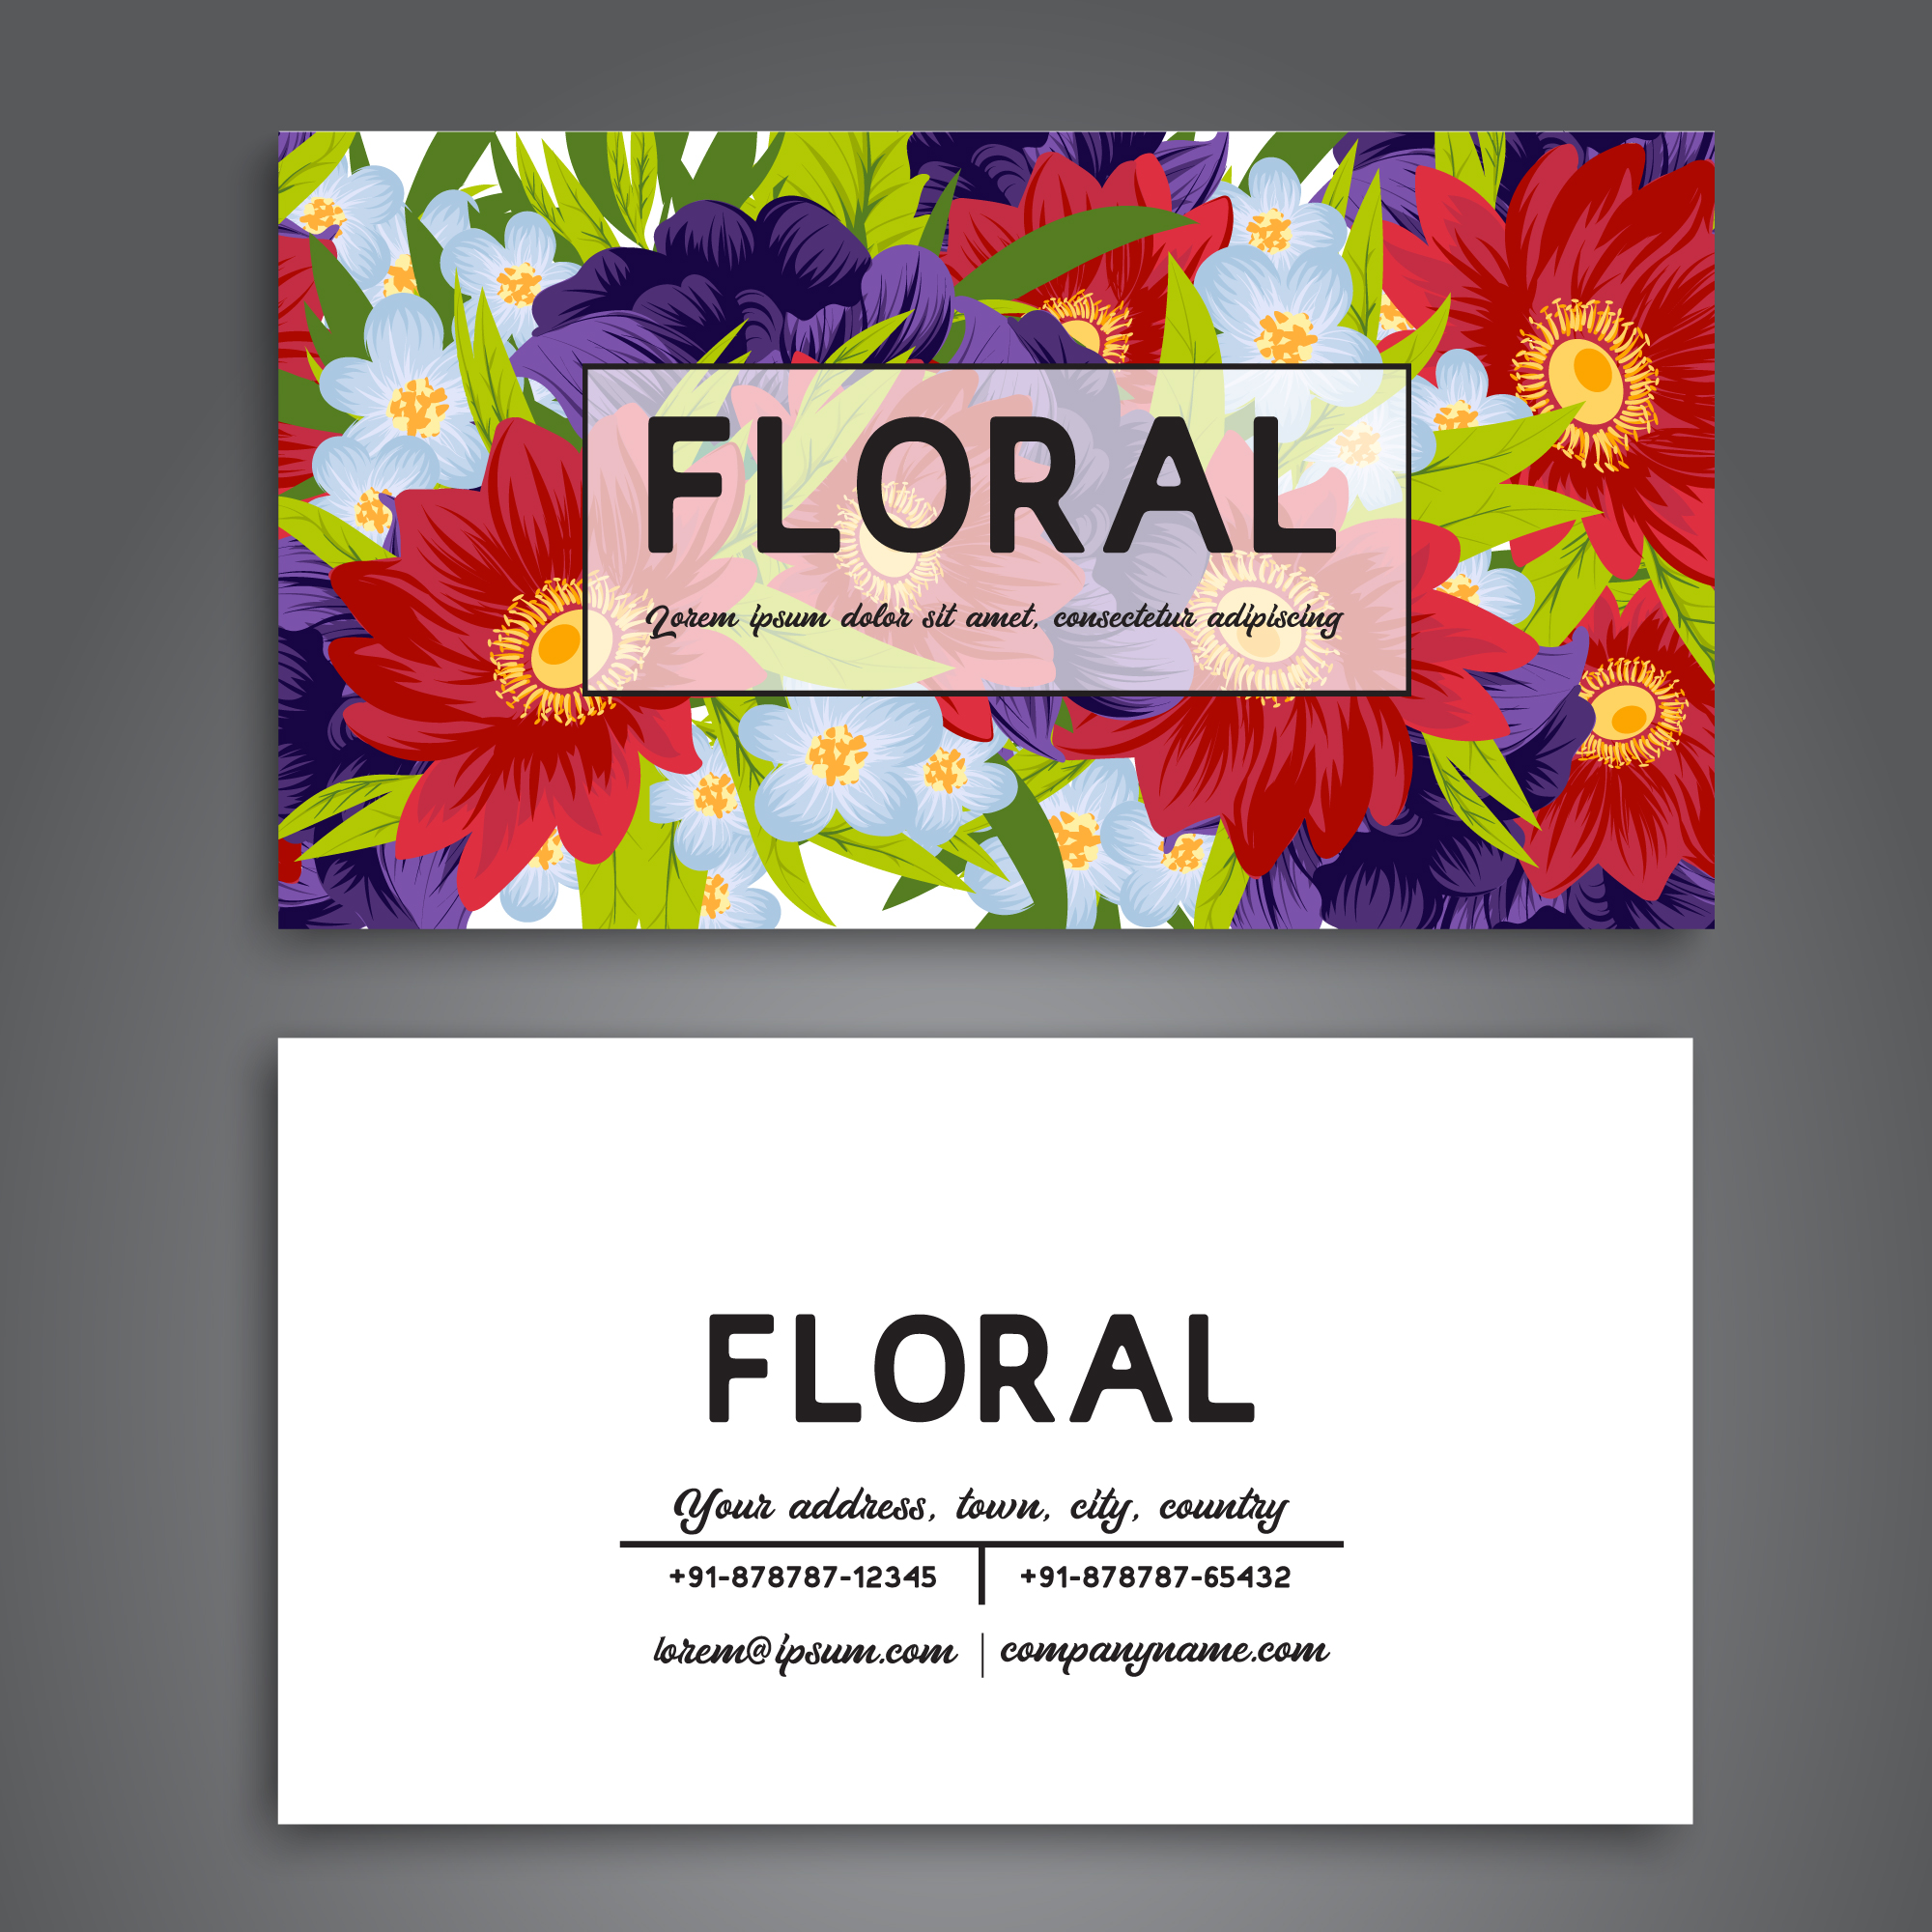 Floral business card